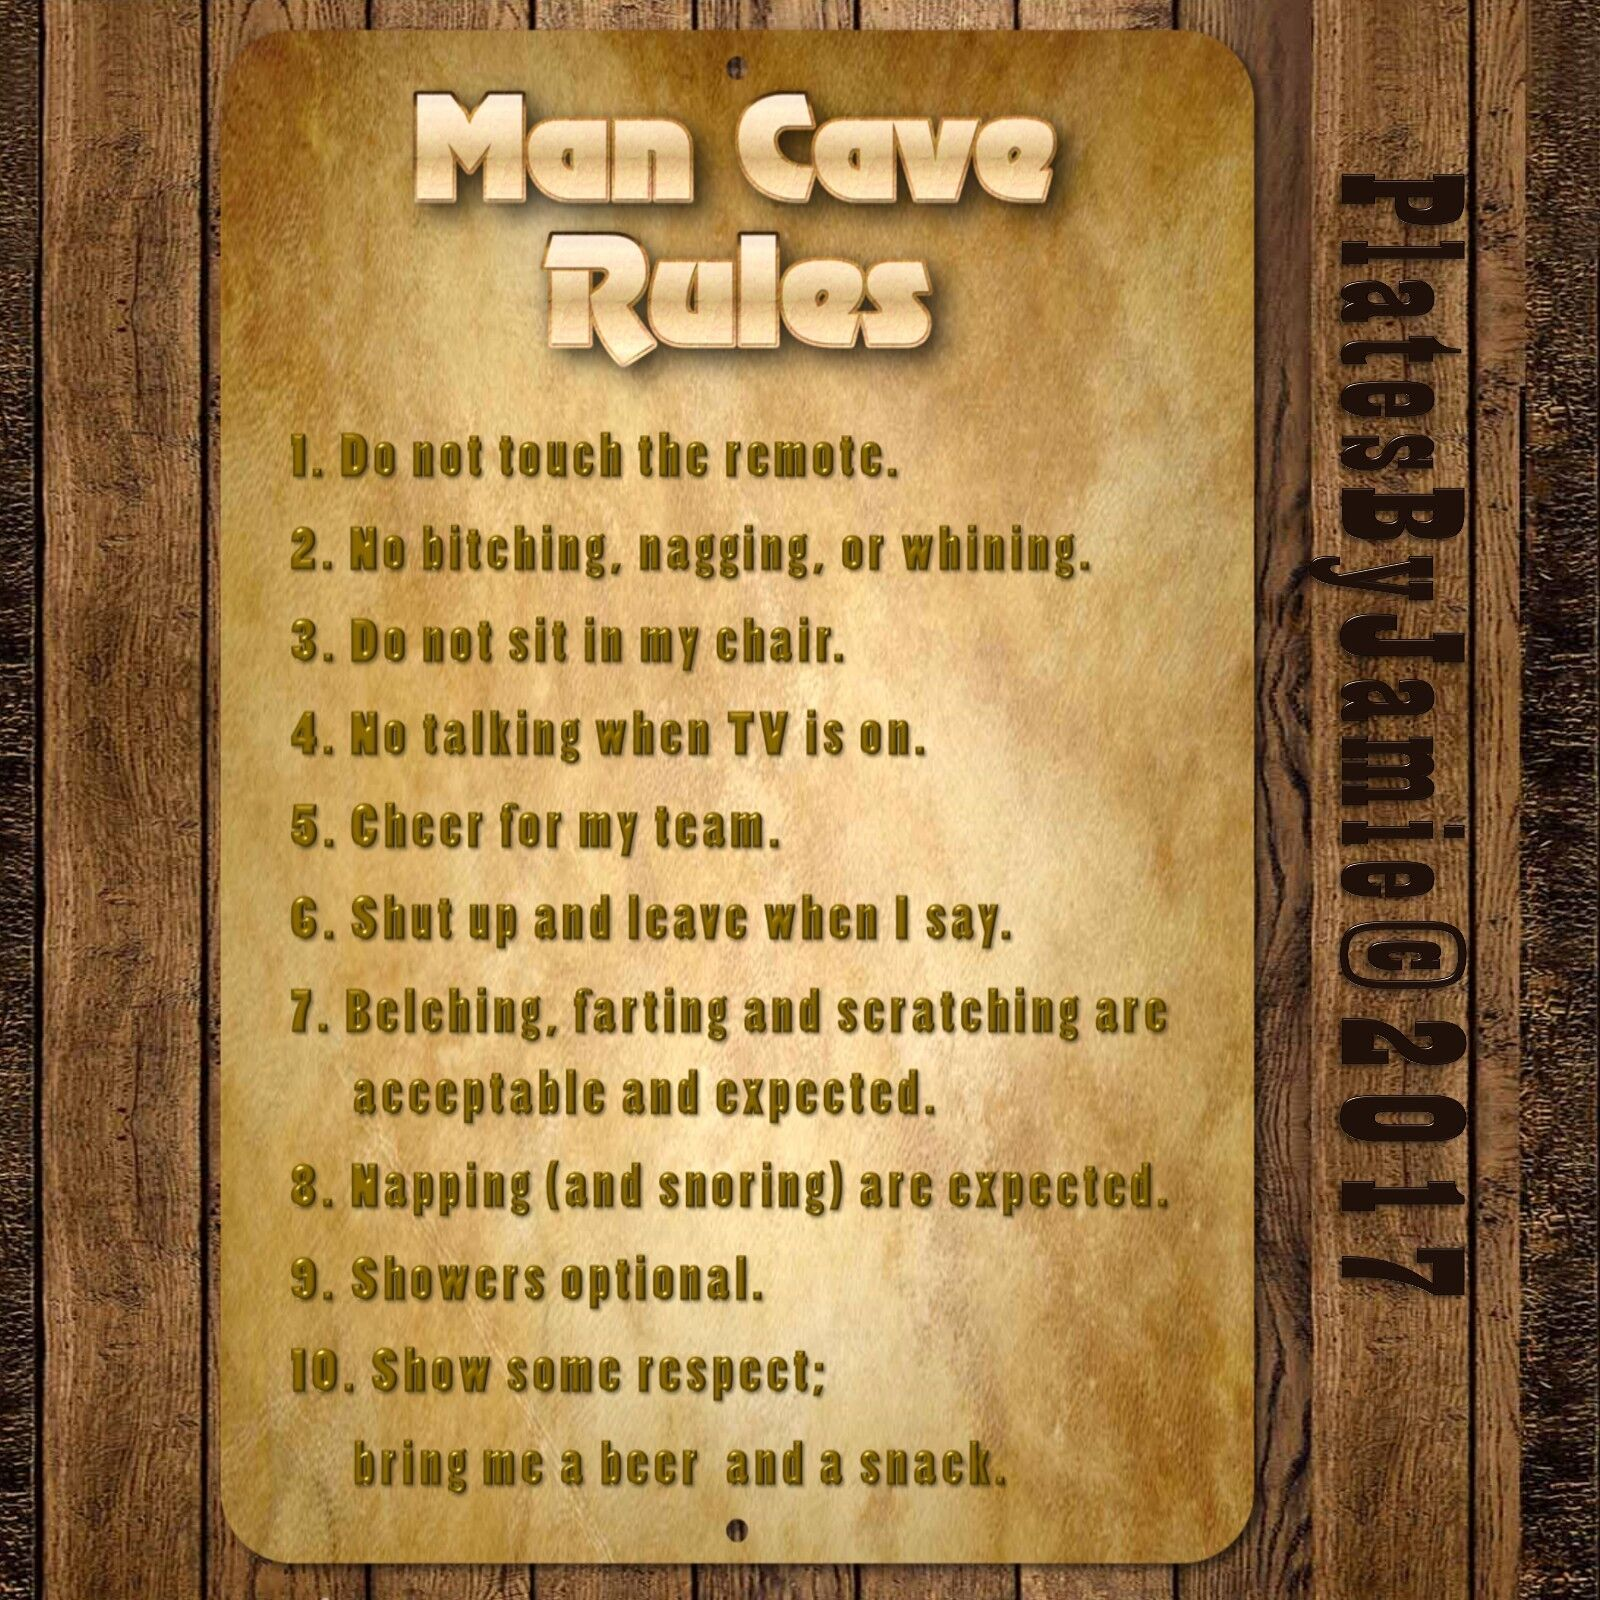 MAN CAVE RULES FUNNY NOVELTY SIGN WALL PLAQUE ART DECOR 12\' x 8 ...